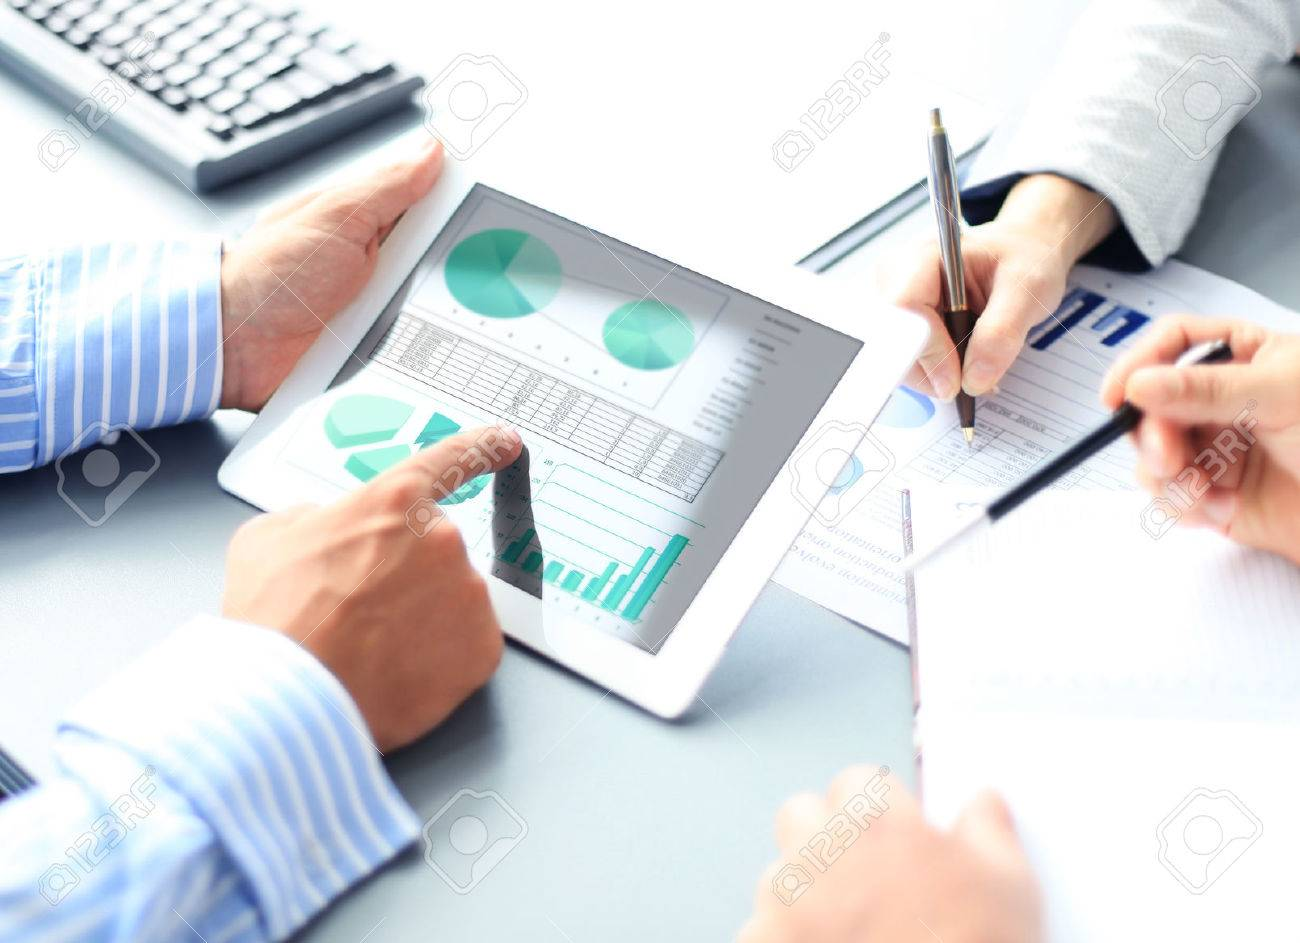 Image of human hand pointing at touchscreen in working environment at meeting - 44557805